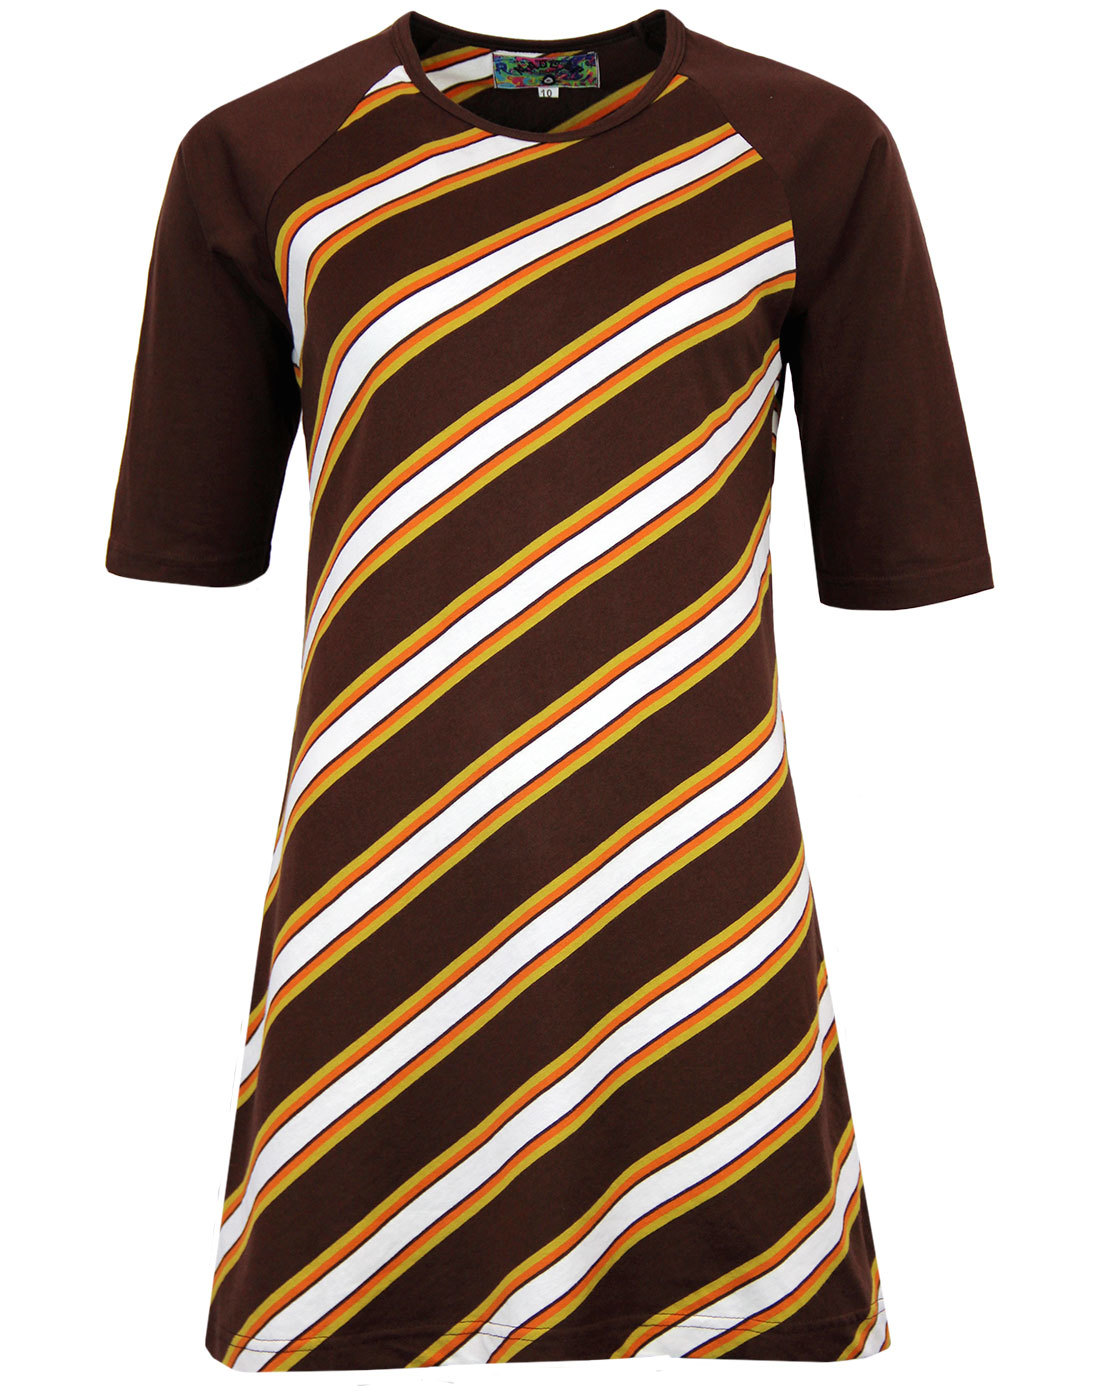 madcap england cilla retro 1960s mod stripe dress